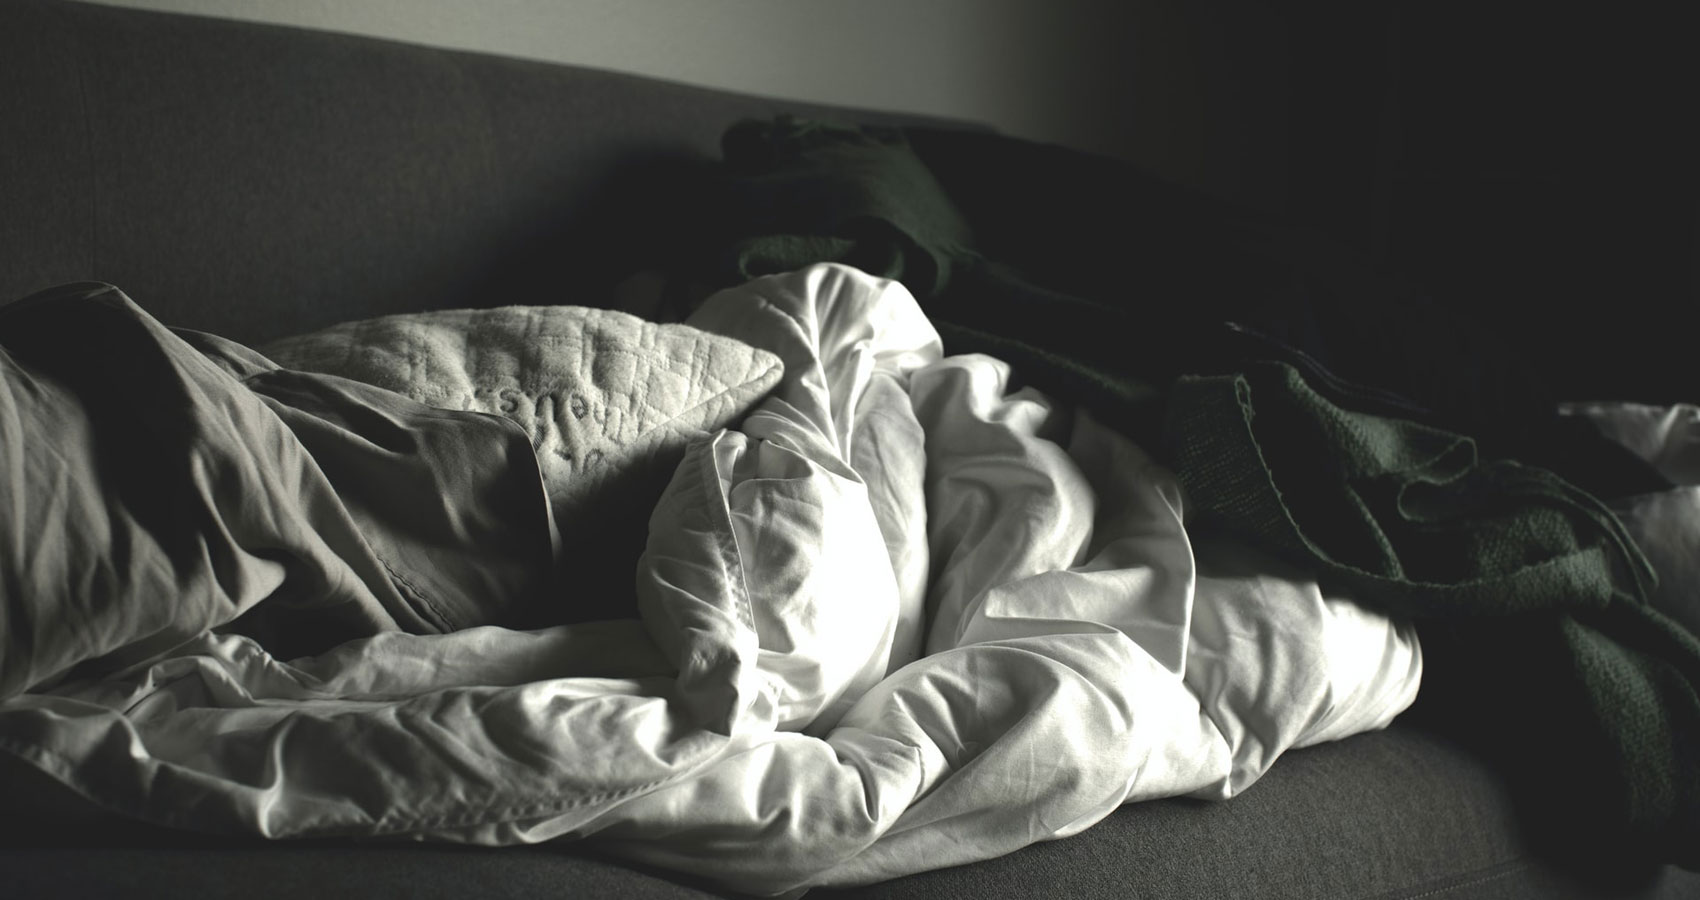 Blankets, a poem written by Ricky Hawthorne at Spillwords.com